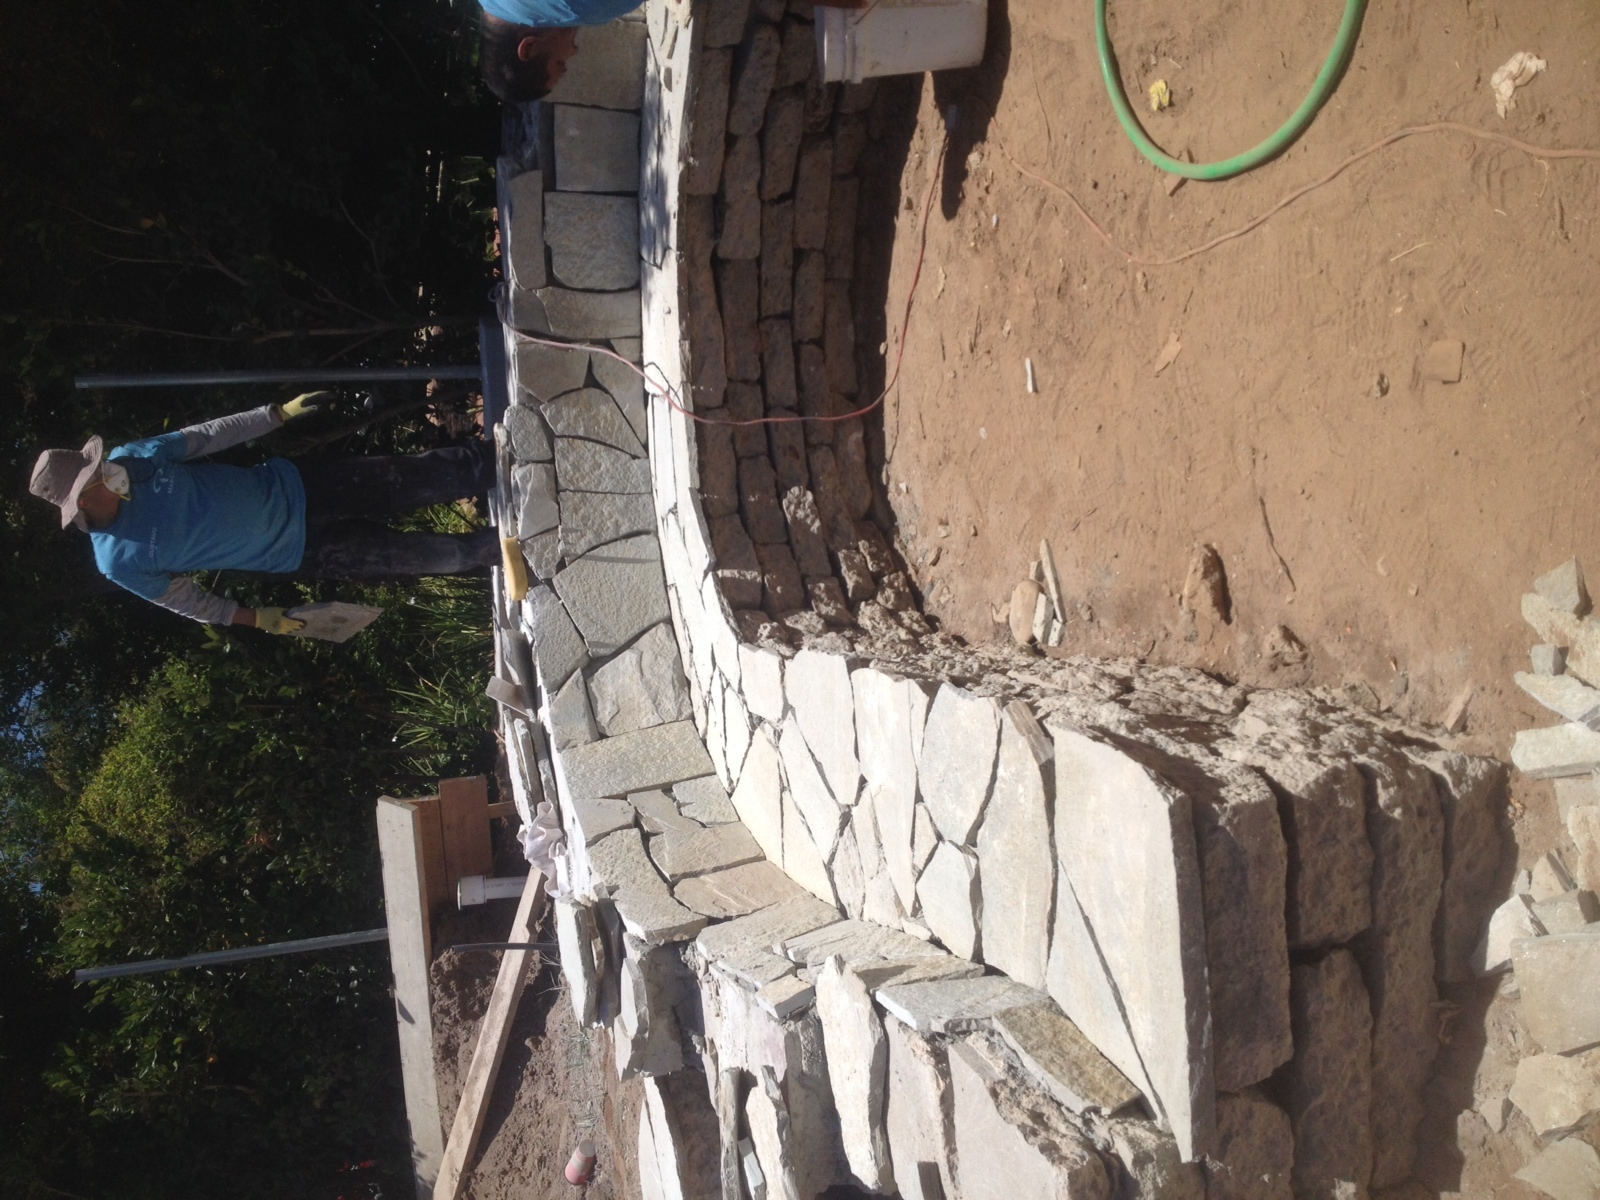 Tips for cleaning up cut marks on flagstone/metaquartzite-img_2176.jpg.jpeg